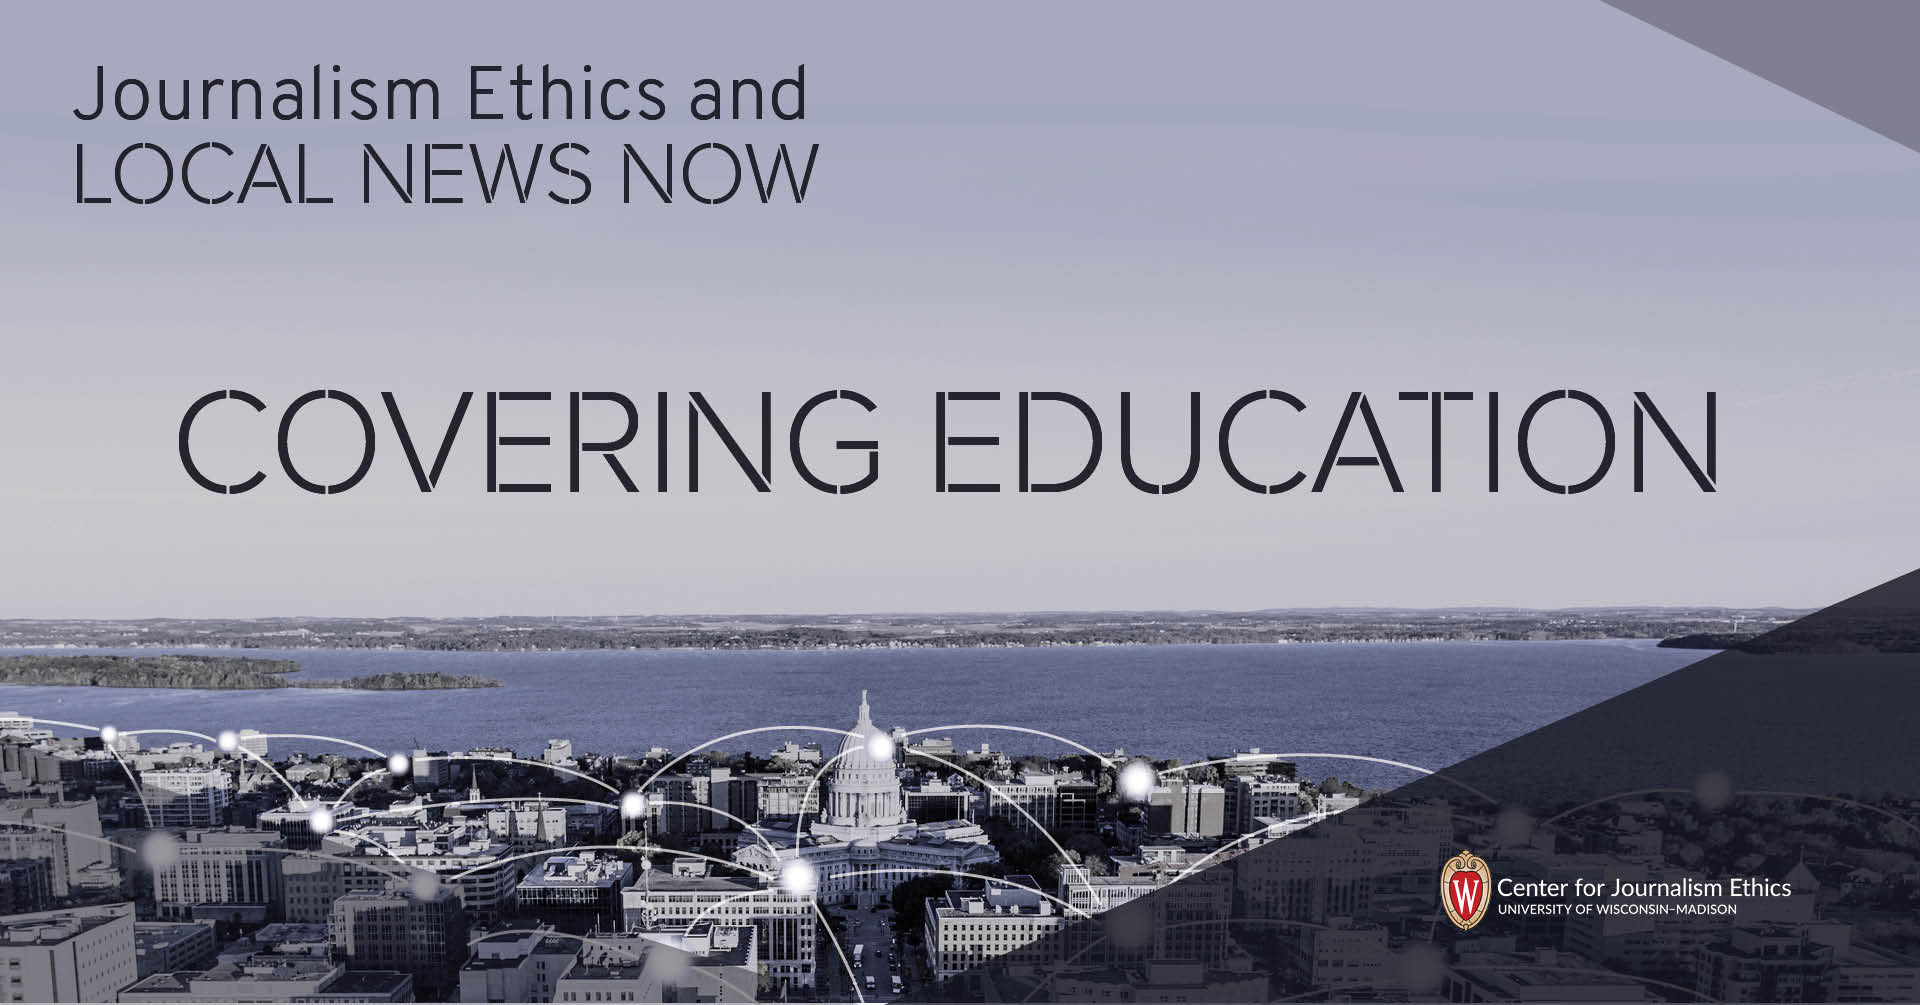 """Image of Madison, Wisconsin w/ text """"Journalism Ethics and Local News Now: Covering Education"""""""